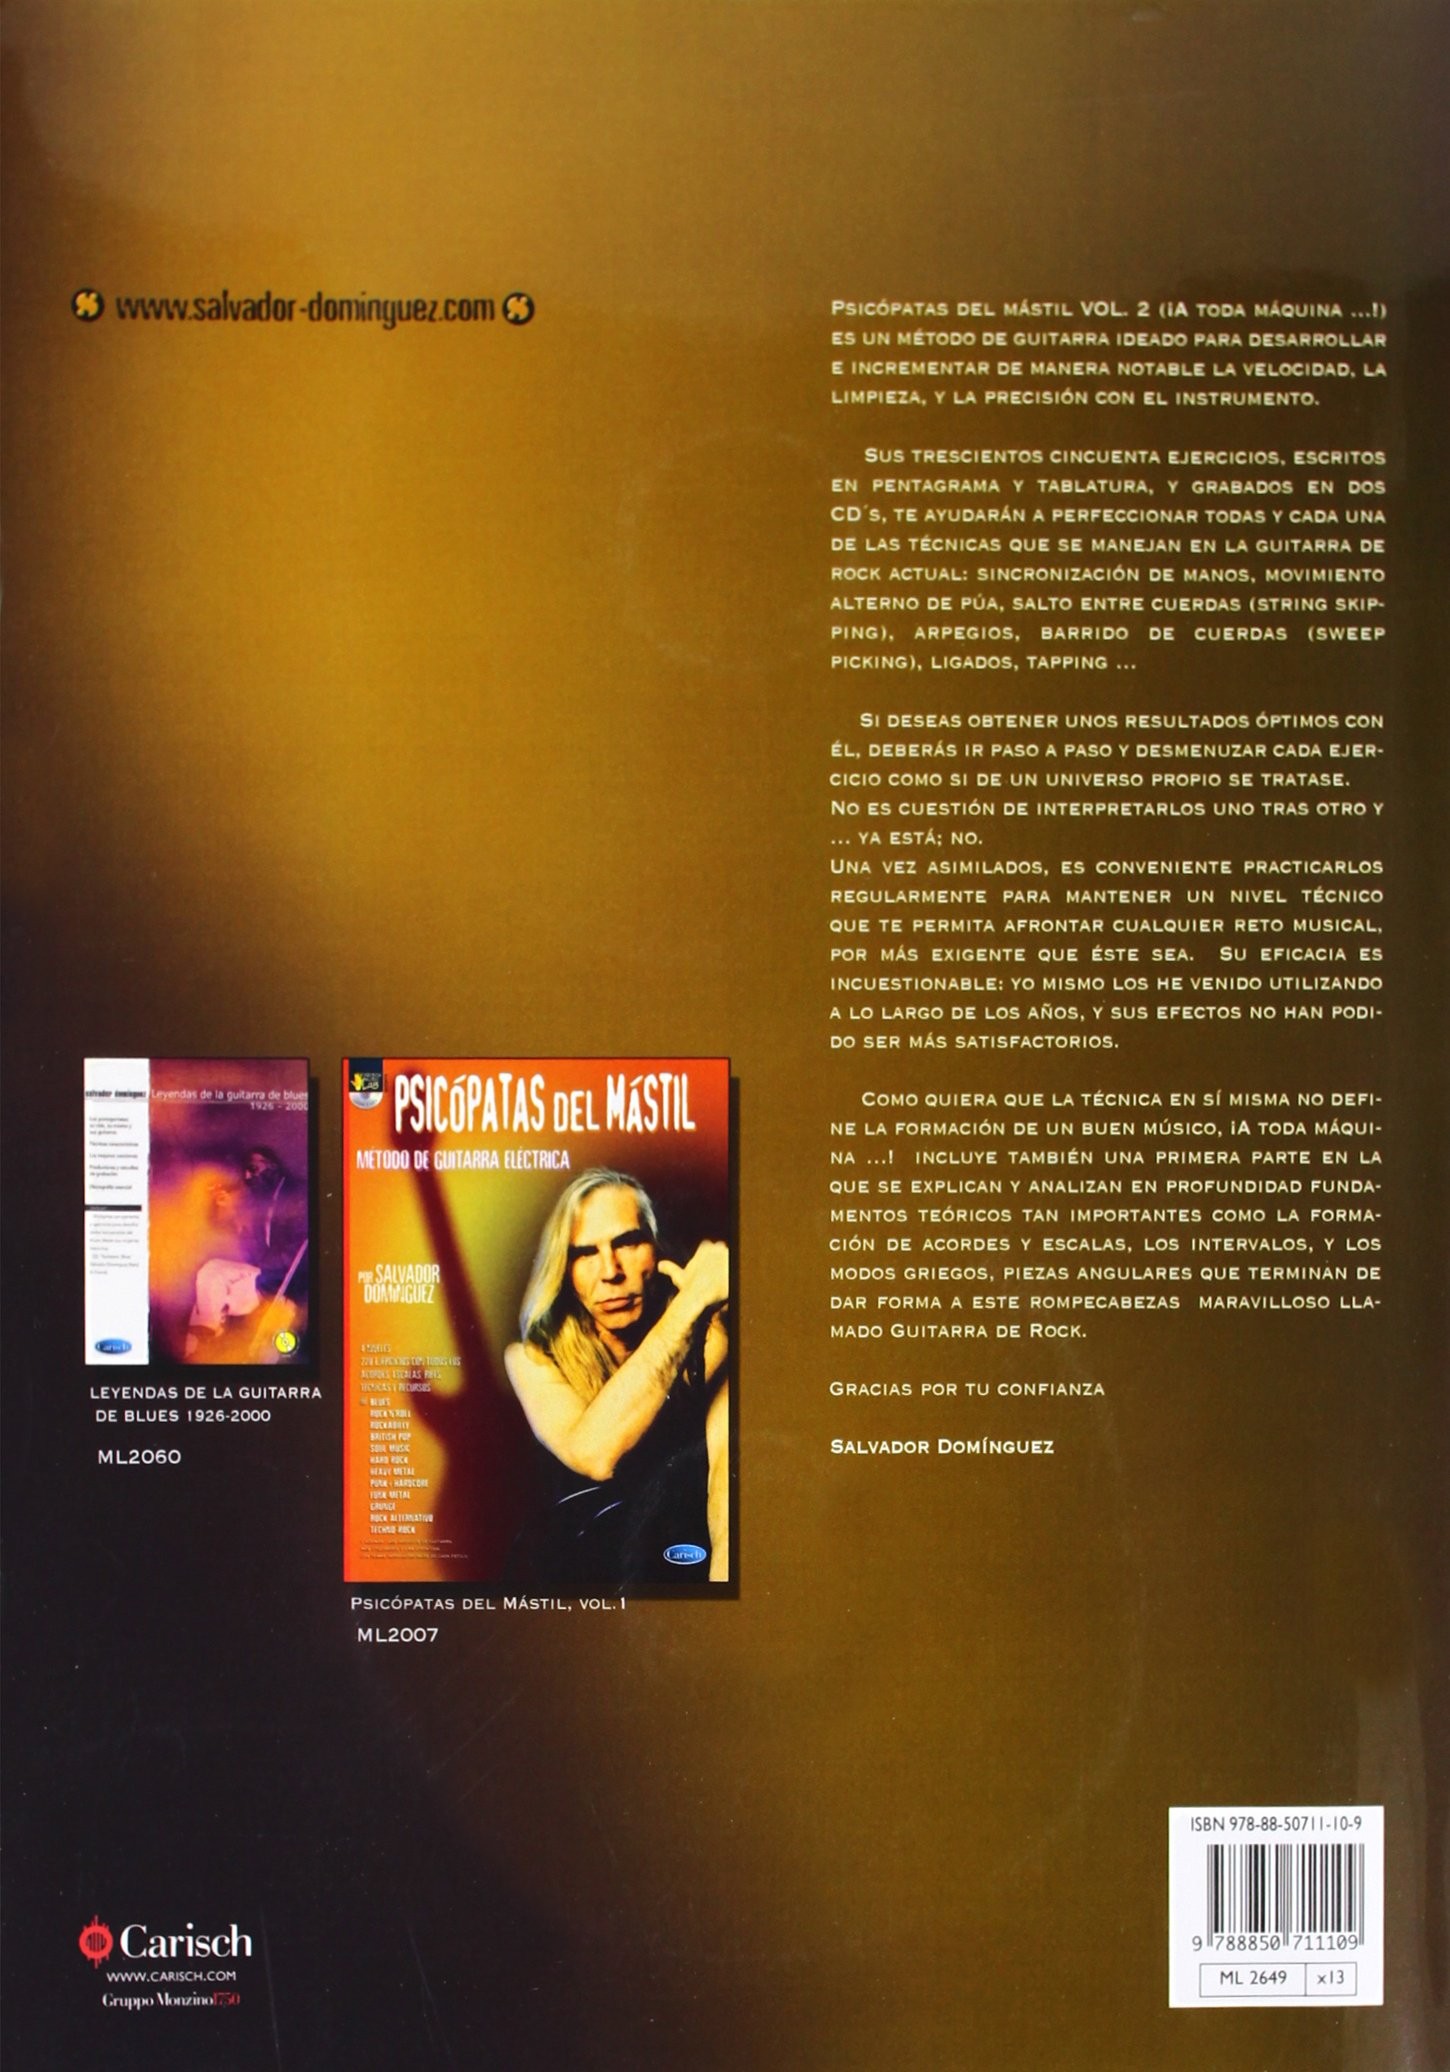 DOMINGUEZ S. - Psicopatas del Mastil Vol.2 para Guitarra Tab (Inc.2 CD): DOMINGUEZ S.: 9788850711109: Amazon.com: Books